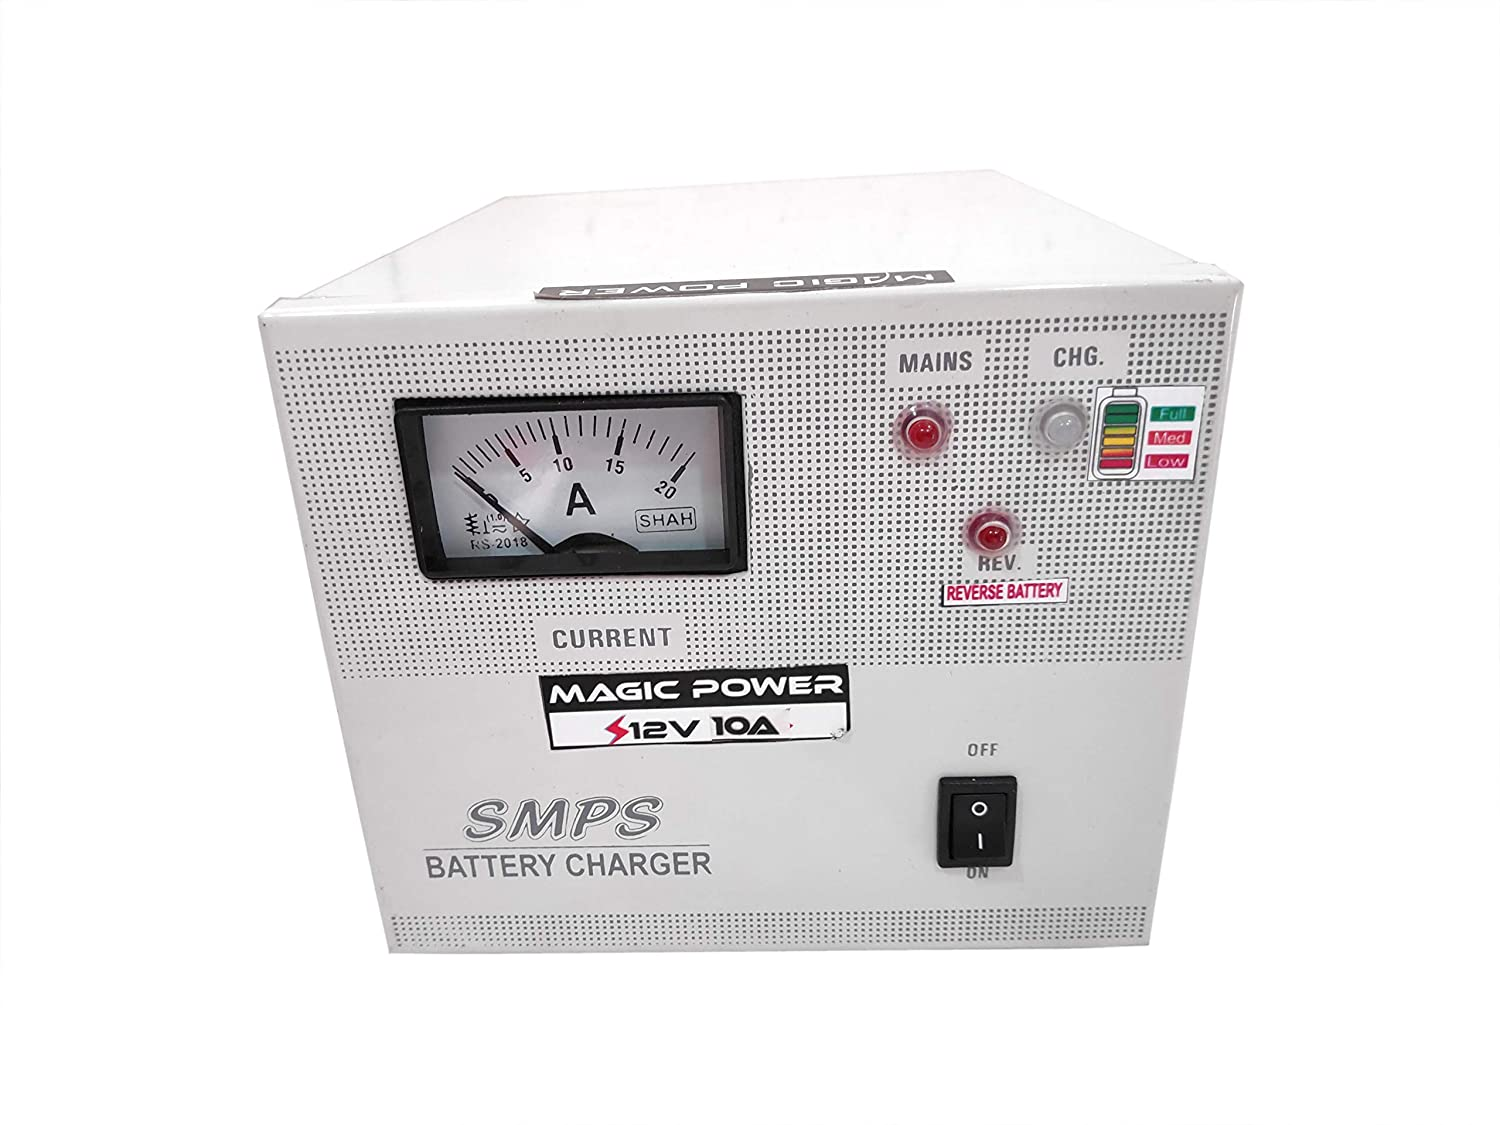 Magic Power 12Volts 10Ampere SMPS Alkaline/Lead Acid Battery Charger  Automoblie/ Inverter Battery